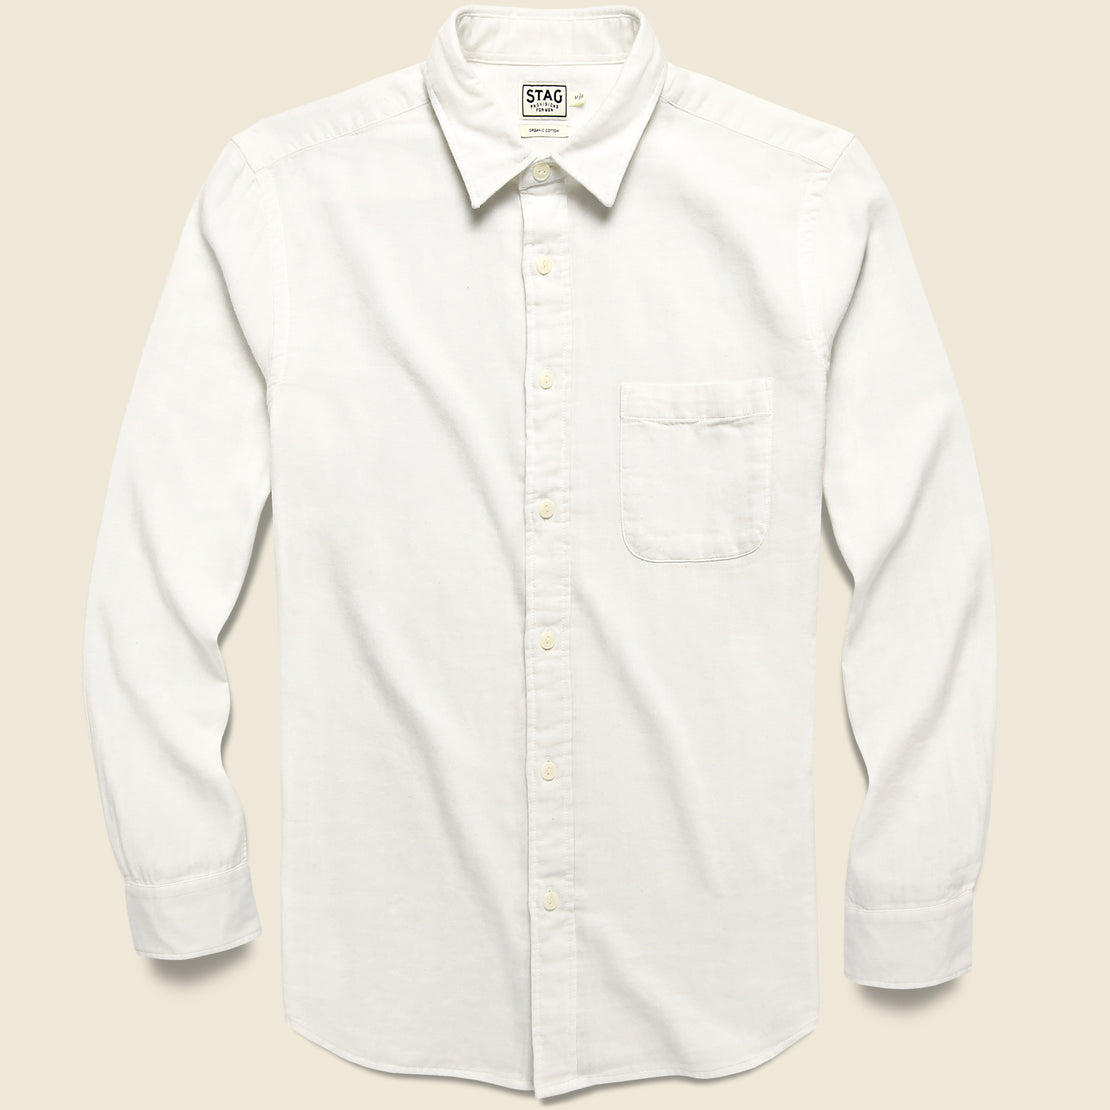 STAG Garment-Dyed Double Cloth Shirt - White